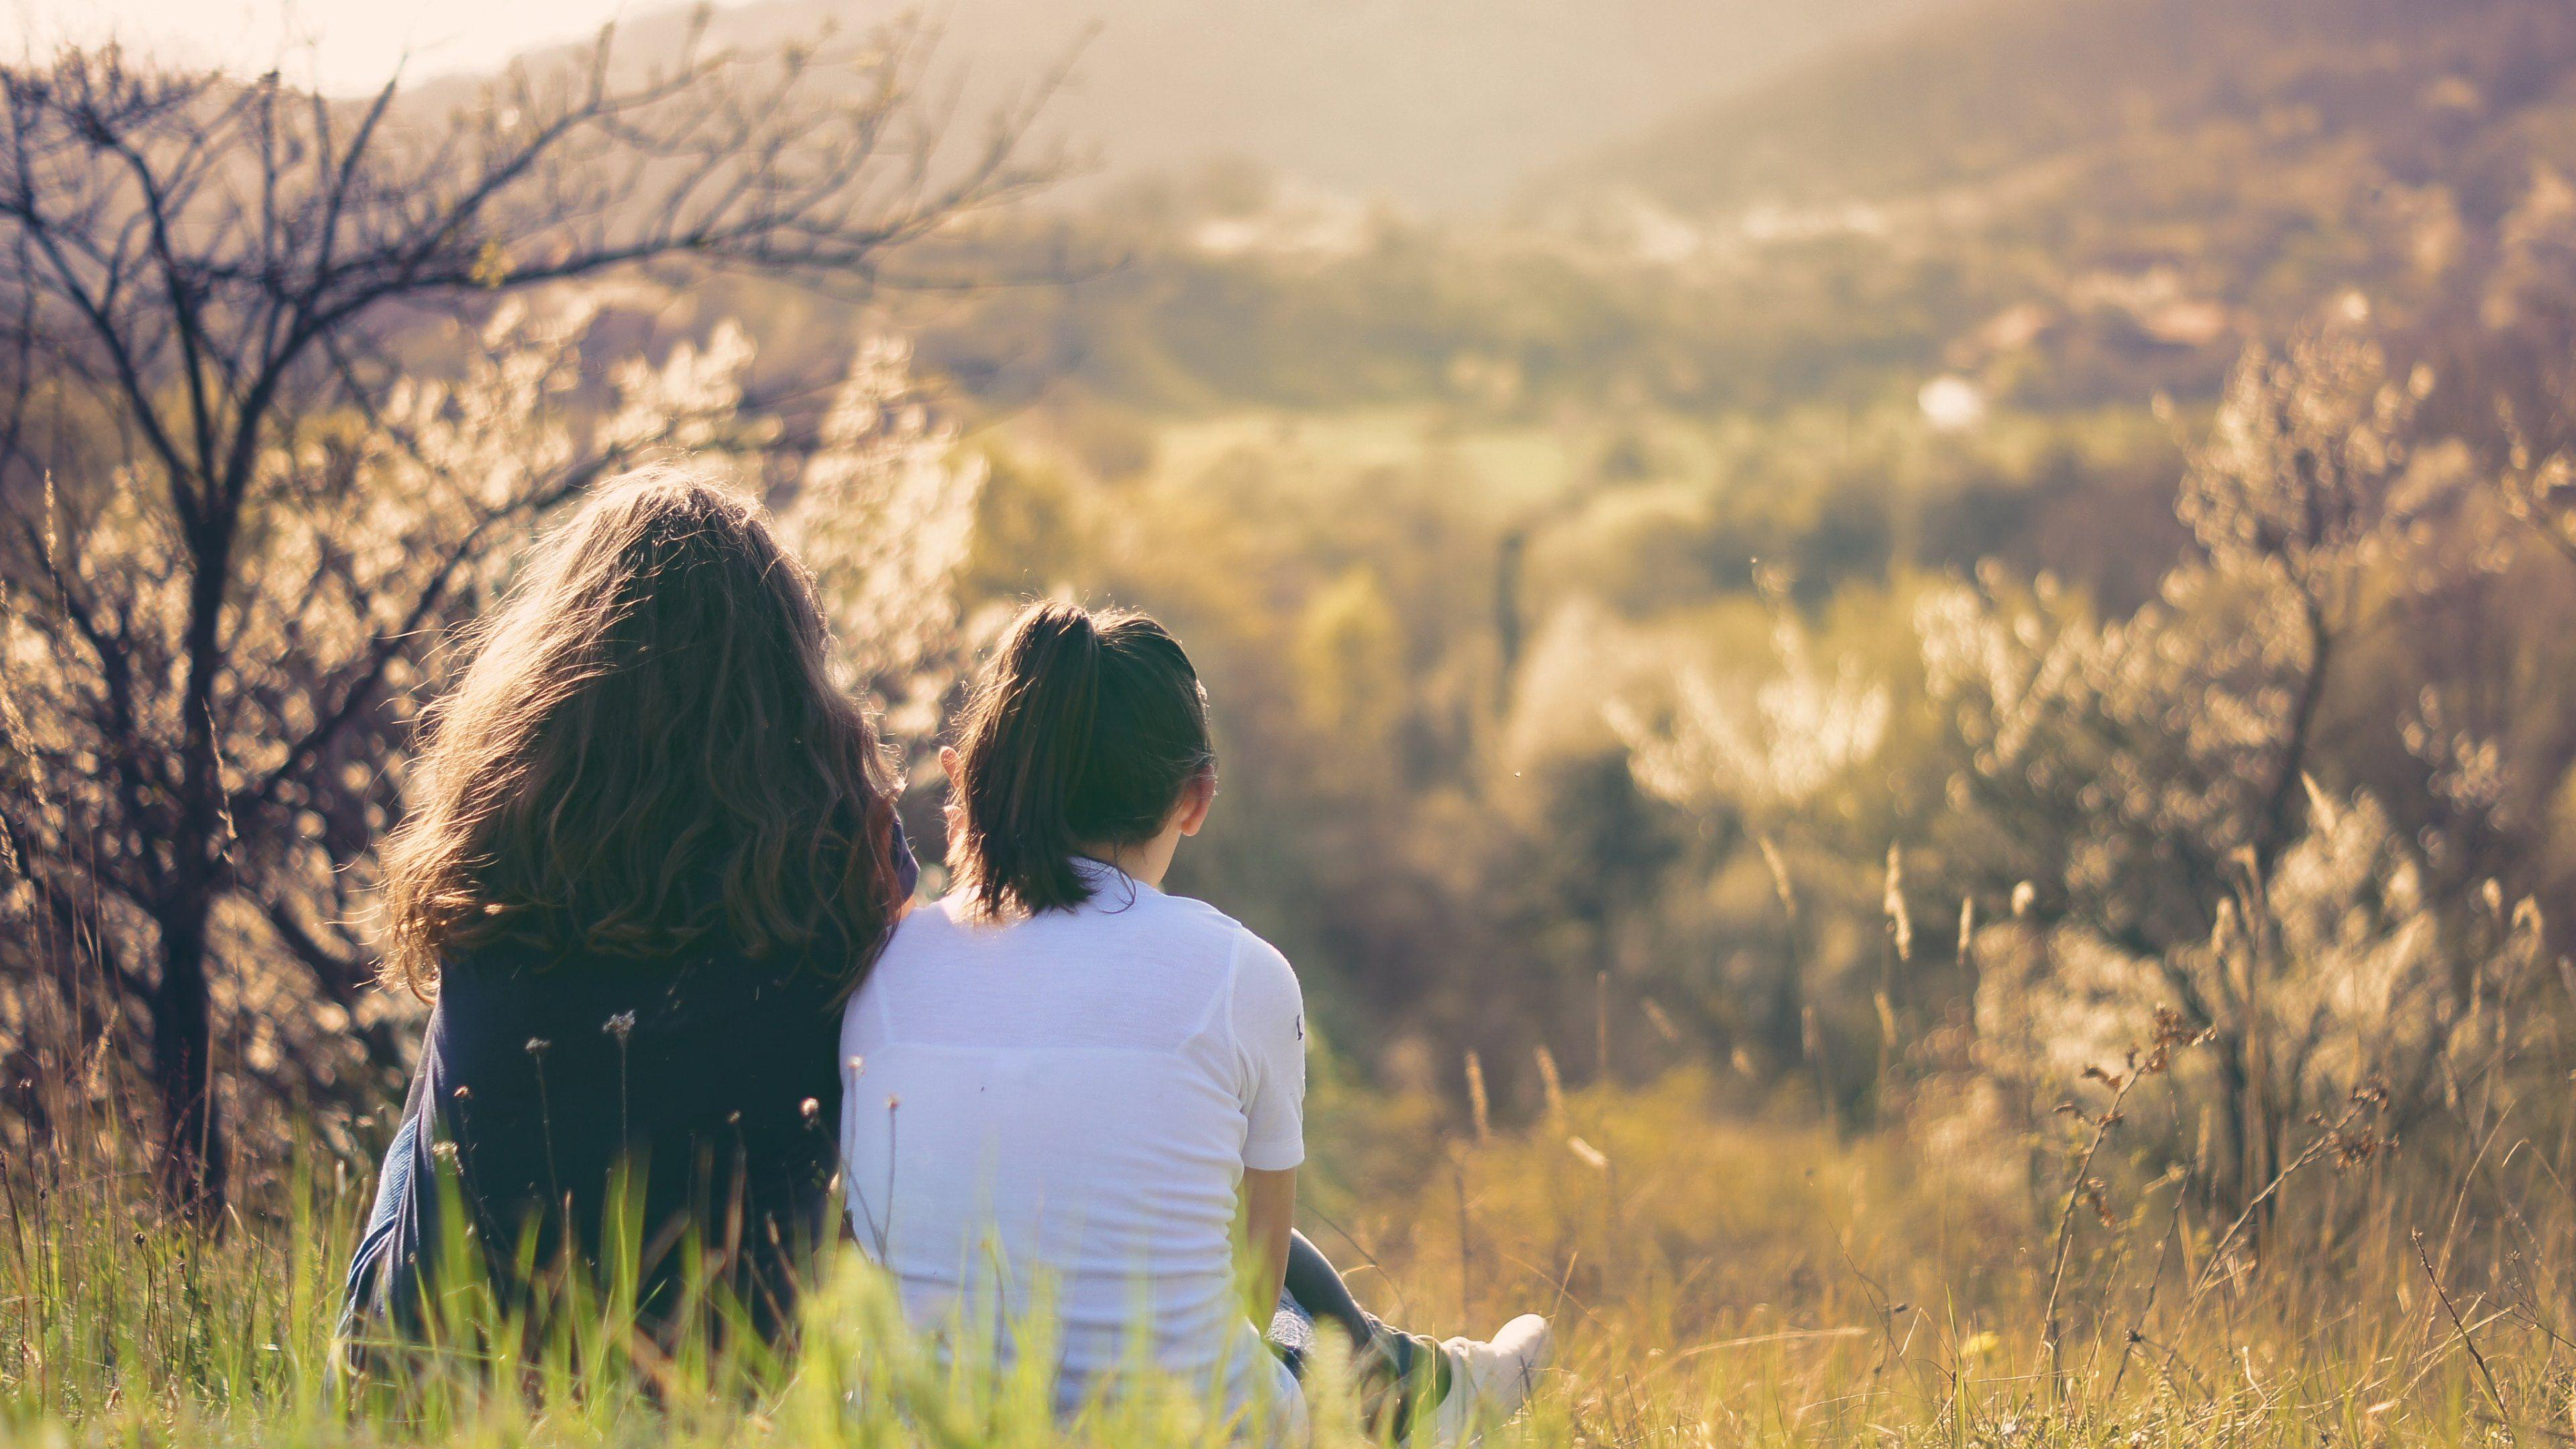 A Letter To My Best Friend Going Through Troubling Times